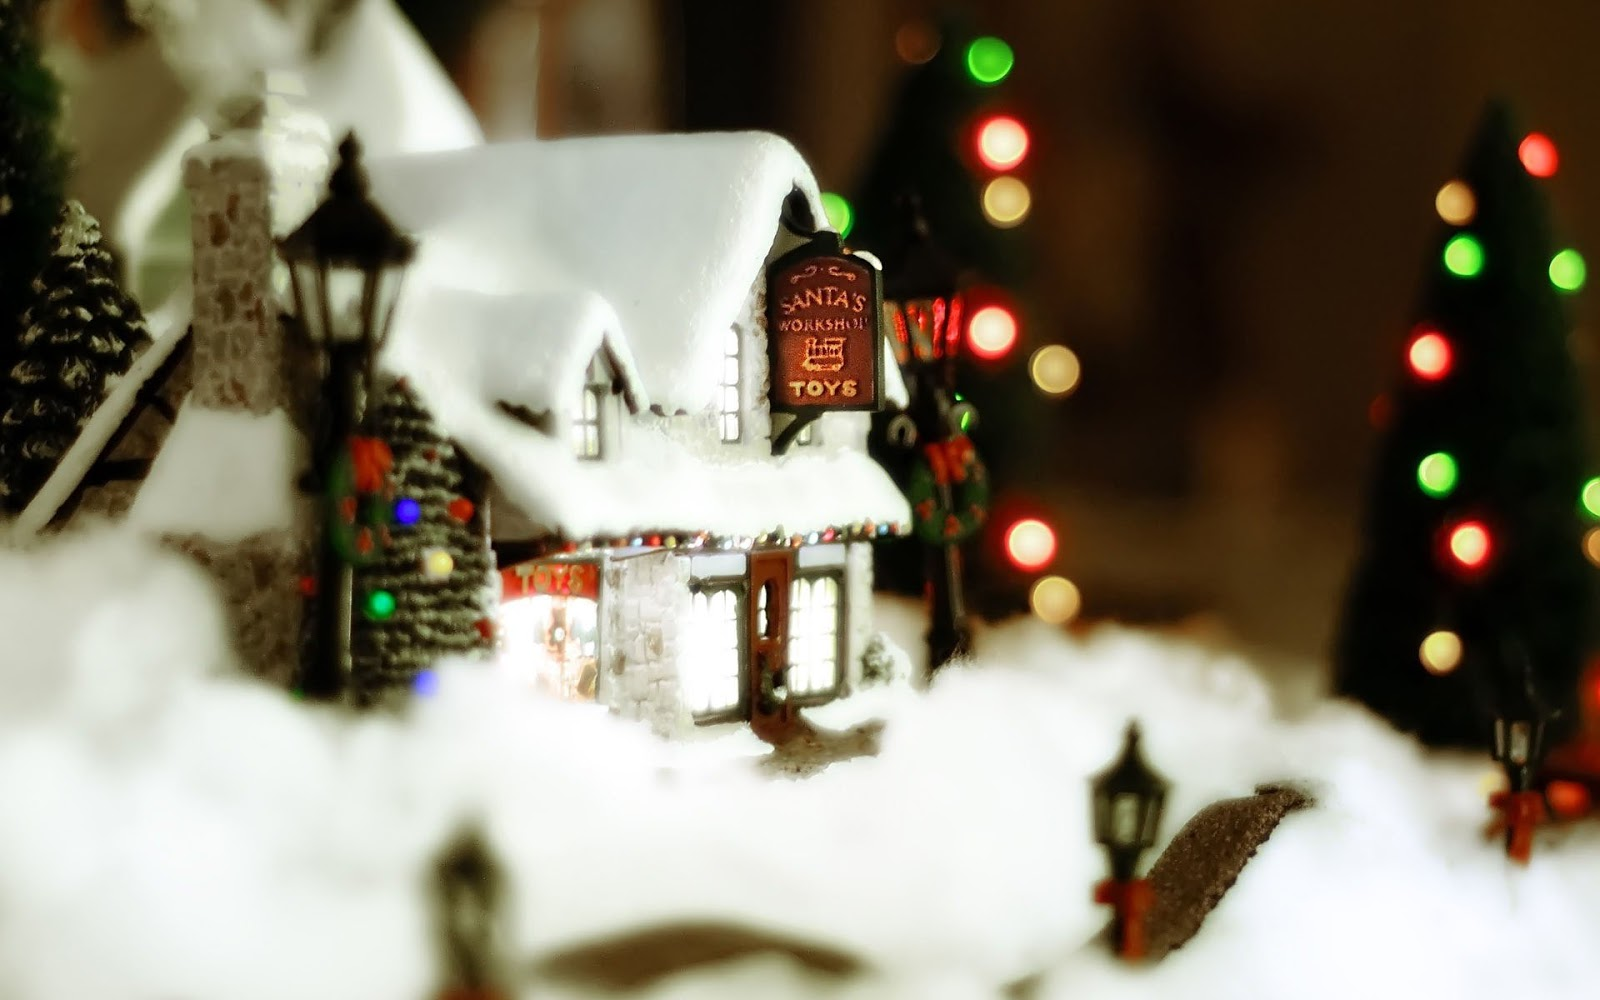 #Christmas #Christmasbackground #snow #Decemberbackground #December.- house under snow,  December background